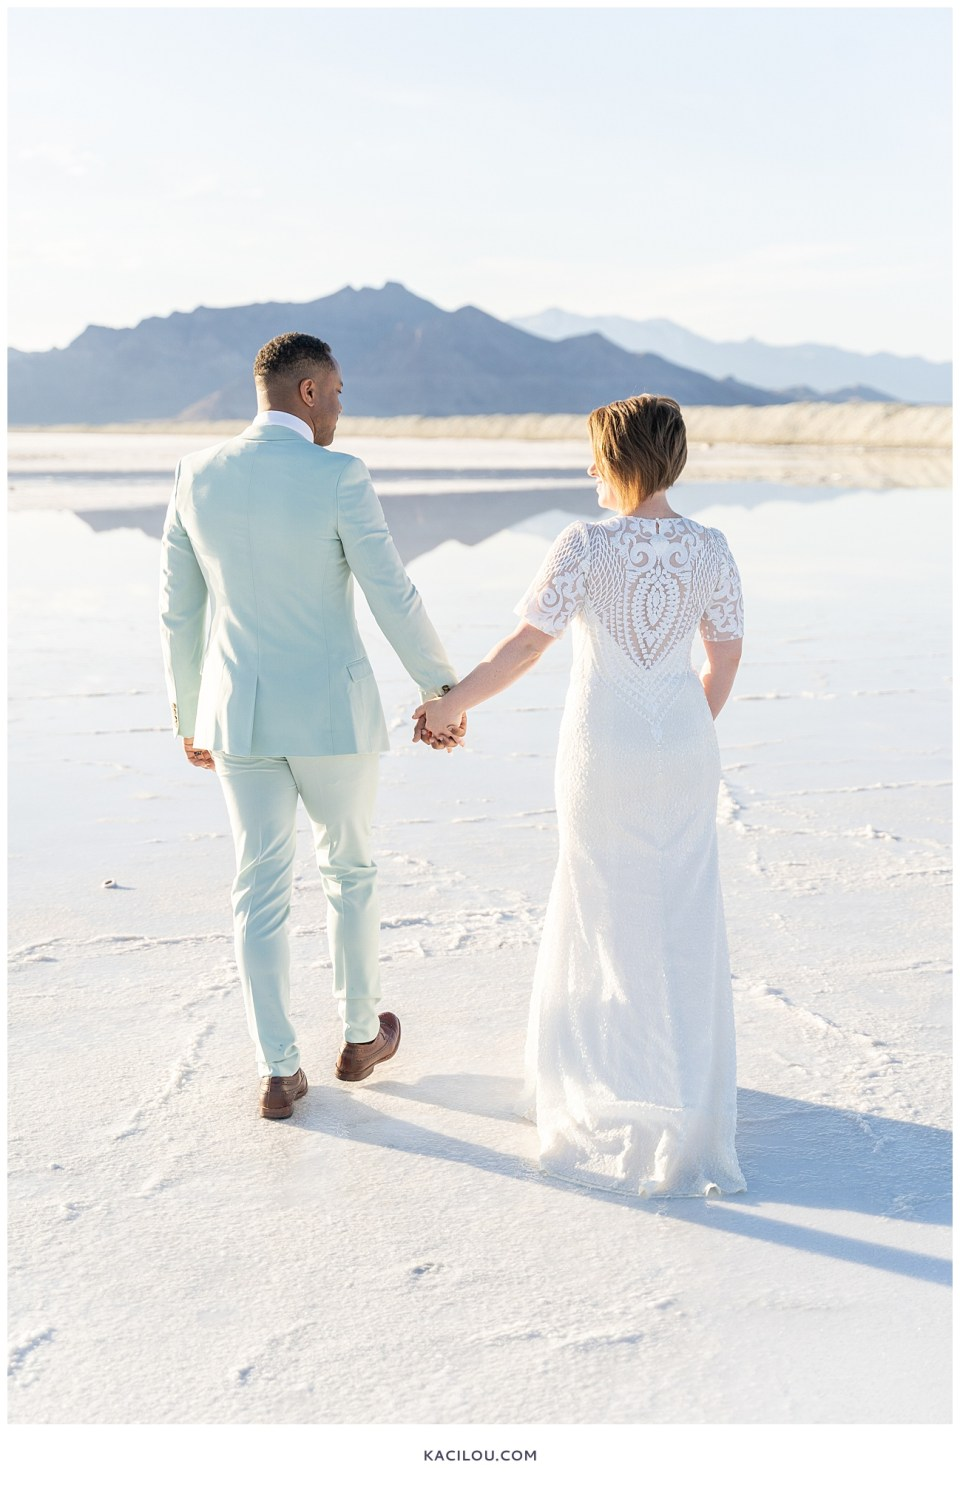 salt flats utah elopement tuesdae and ethan by kaci lou photography-100.jpg